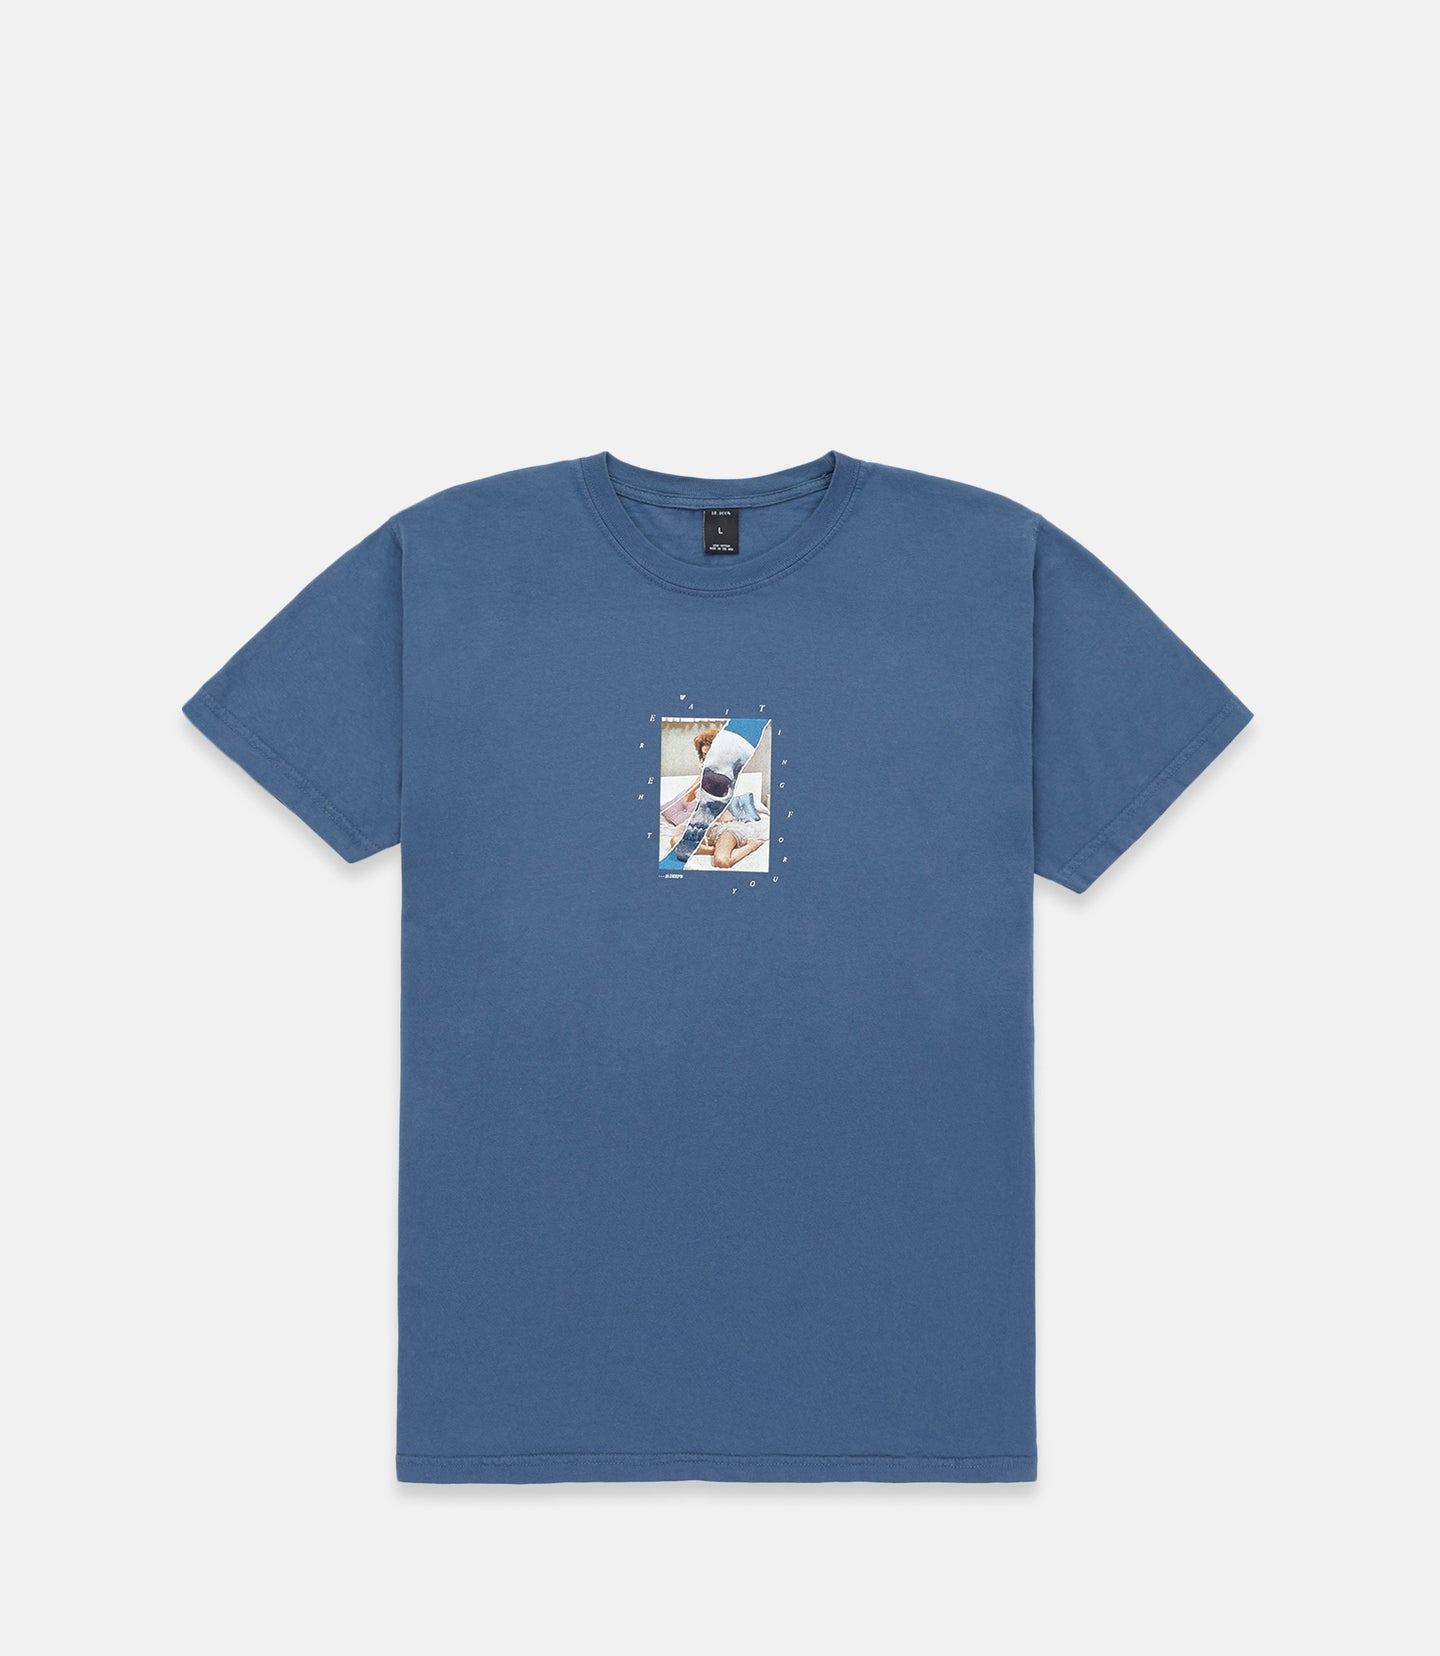 LOVE AND DEATH S/S TEE - BLUE